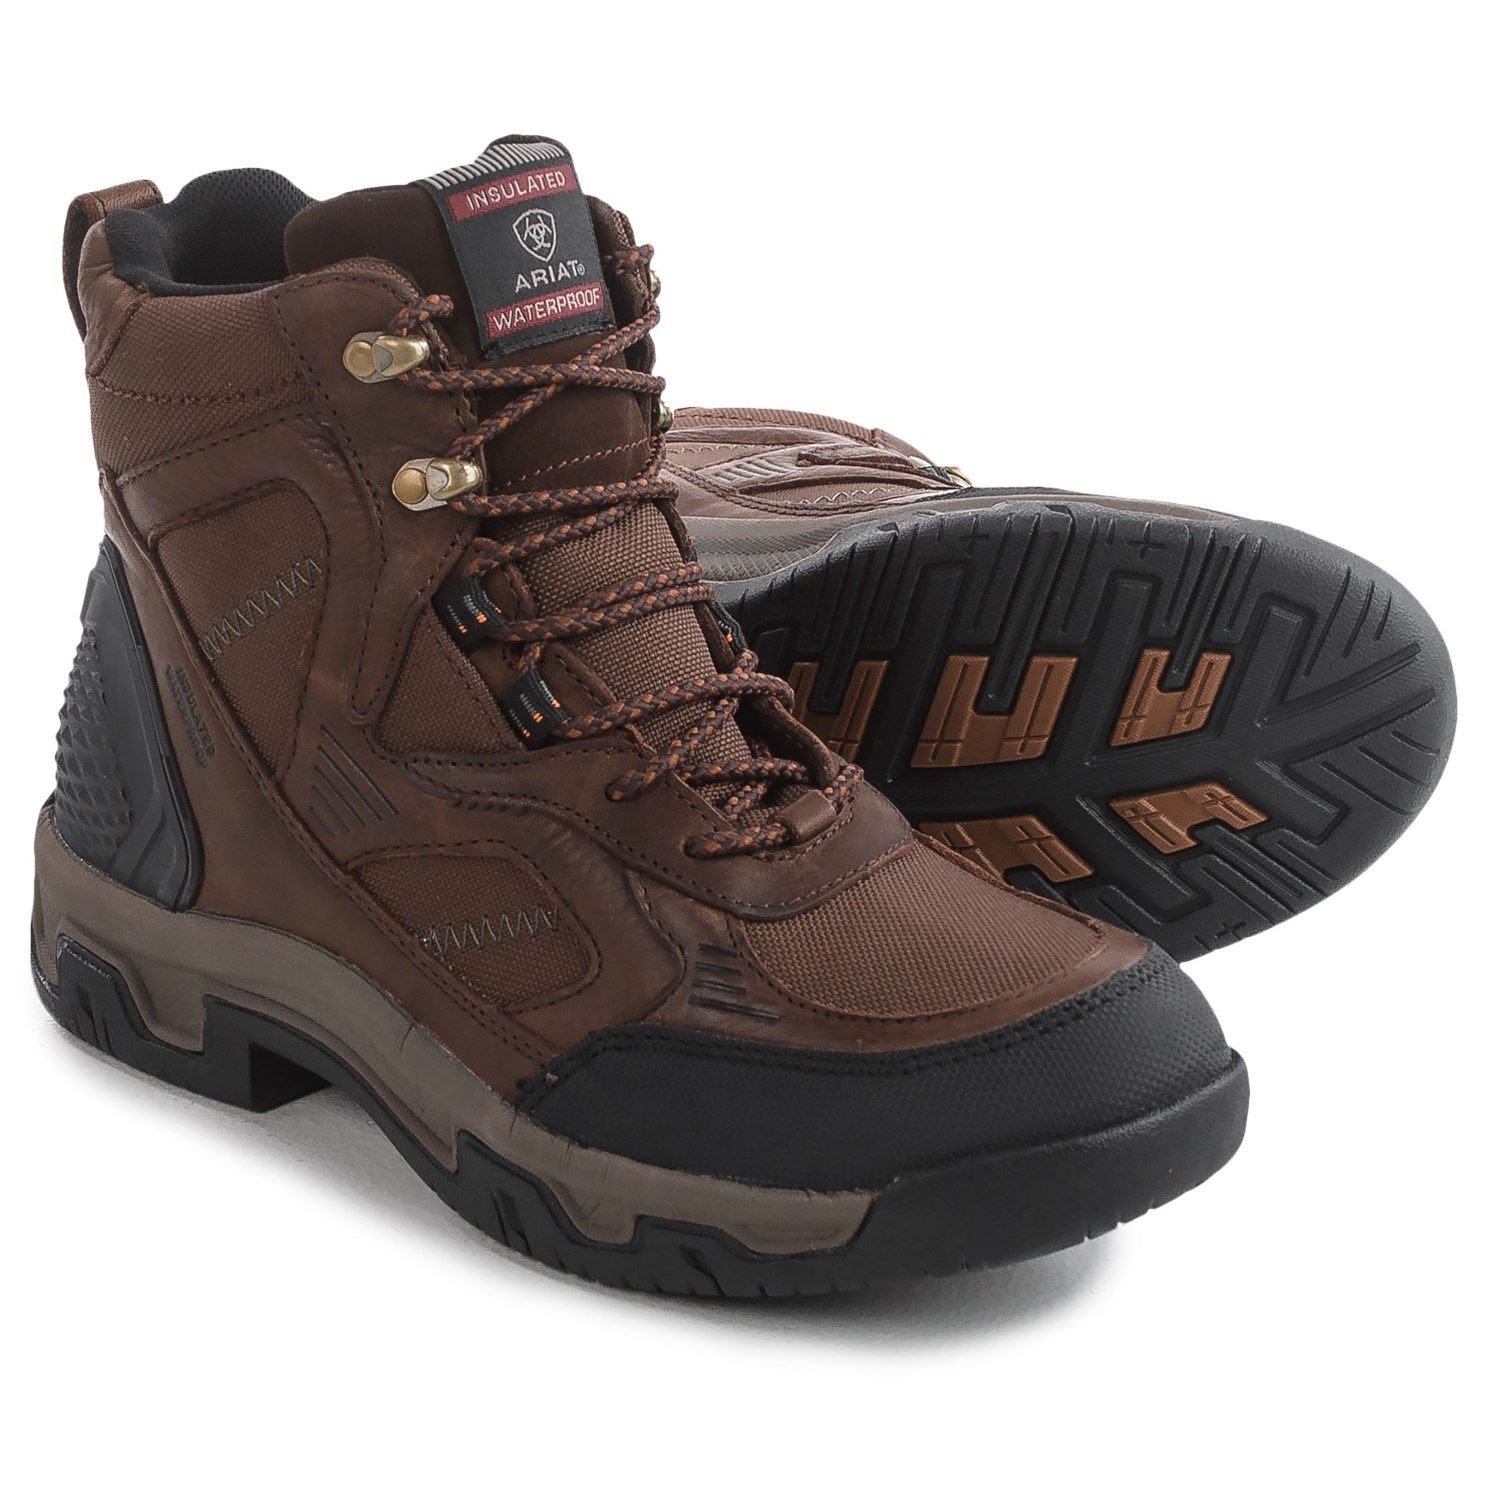 Ariat Creston H2o Insulated Work Boots For Men Save 48